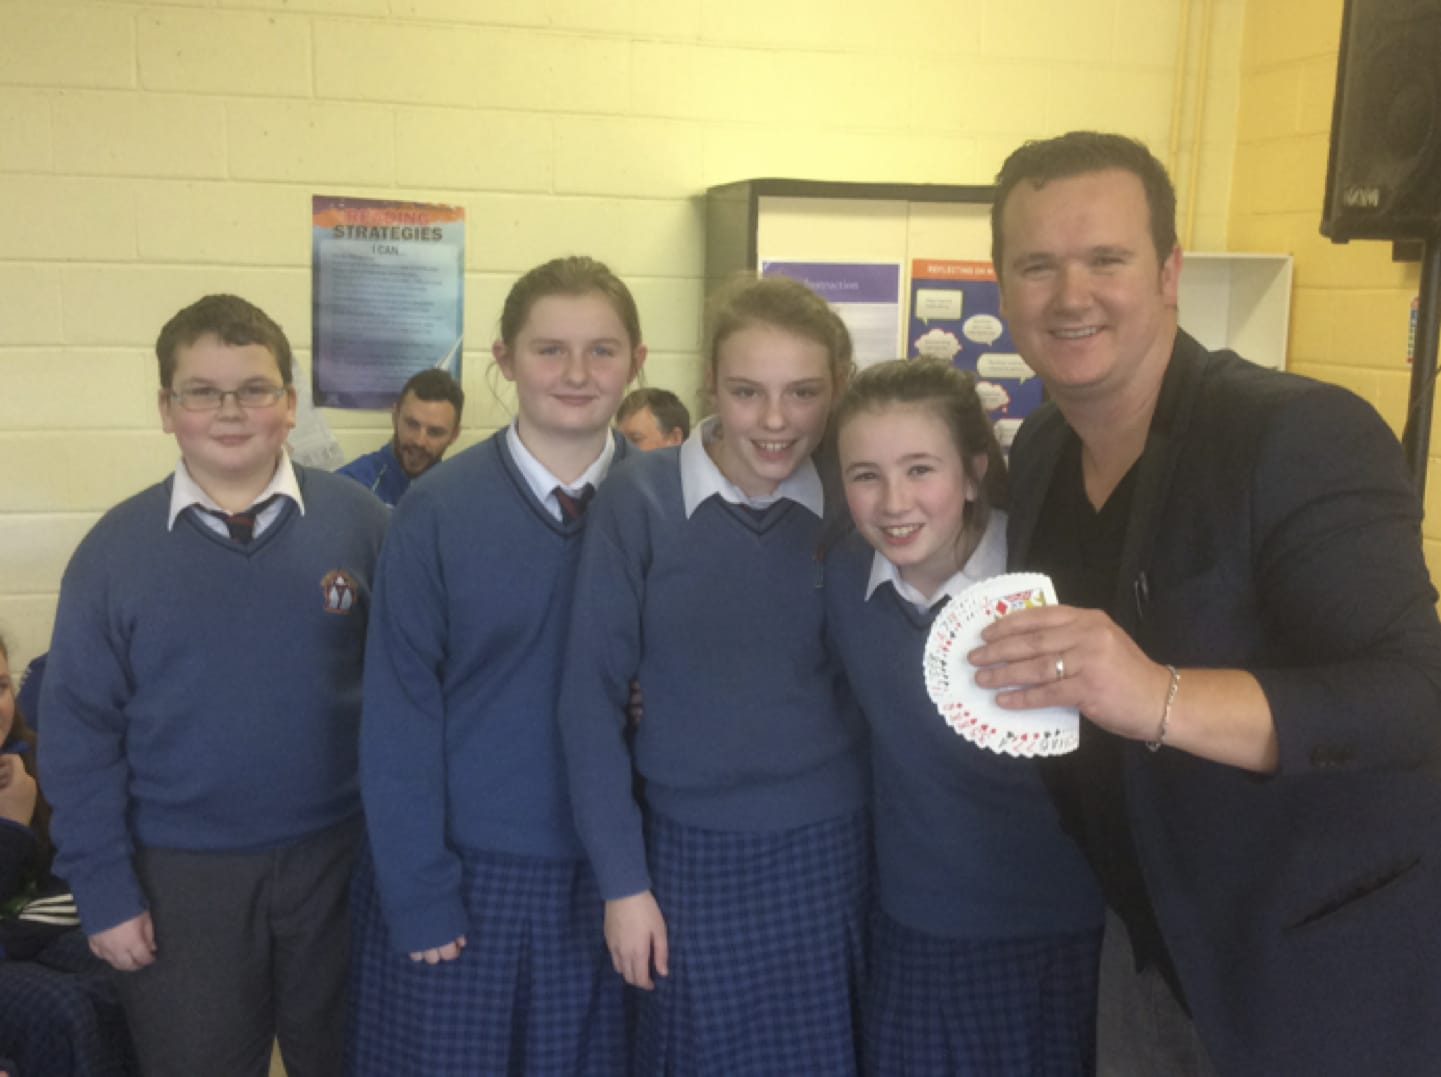 January 2017: Luke O Sullivan, Sarah Barrett, Nikita  Lysaght, and Deirdre McMahon with Mathemagician Leon Anderson during Numeracy Week at Desmond College